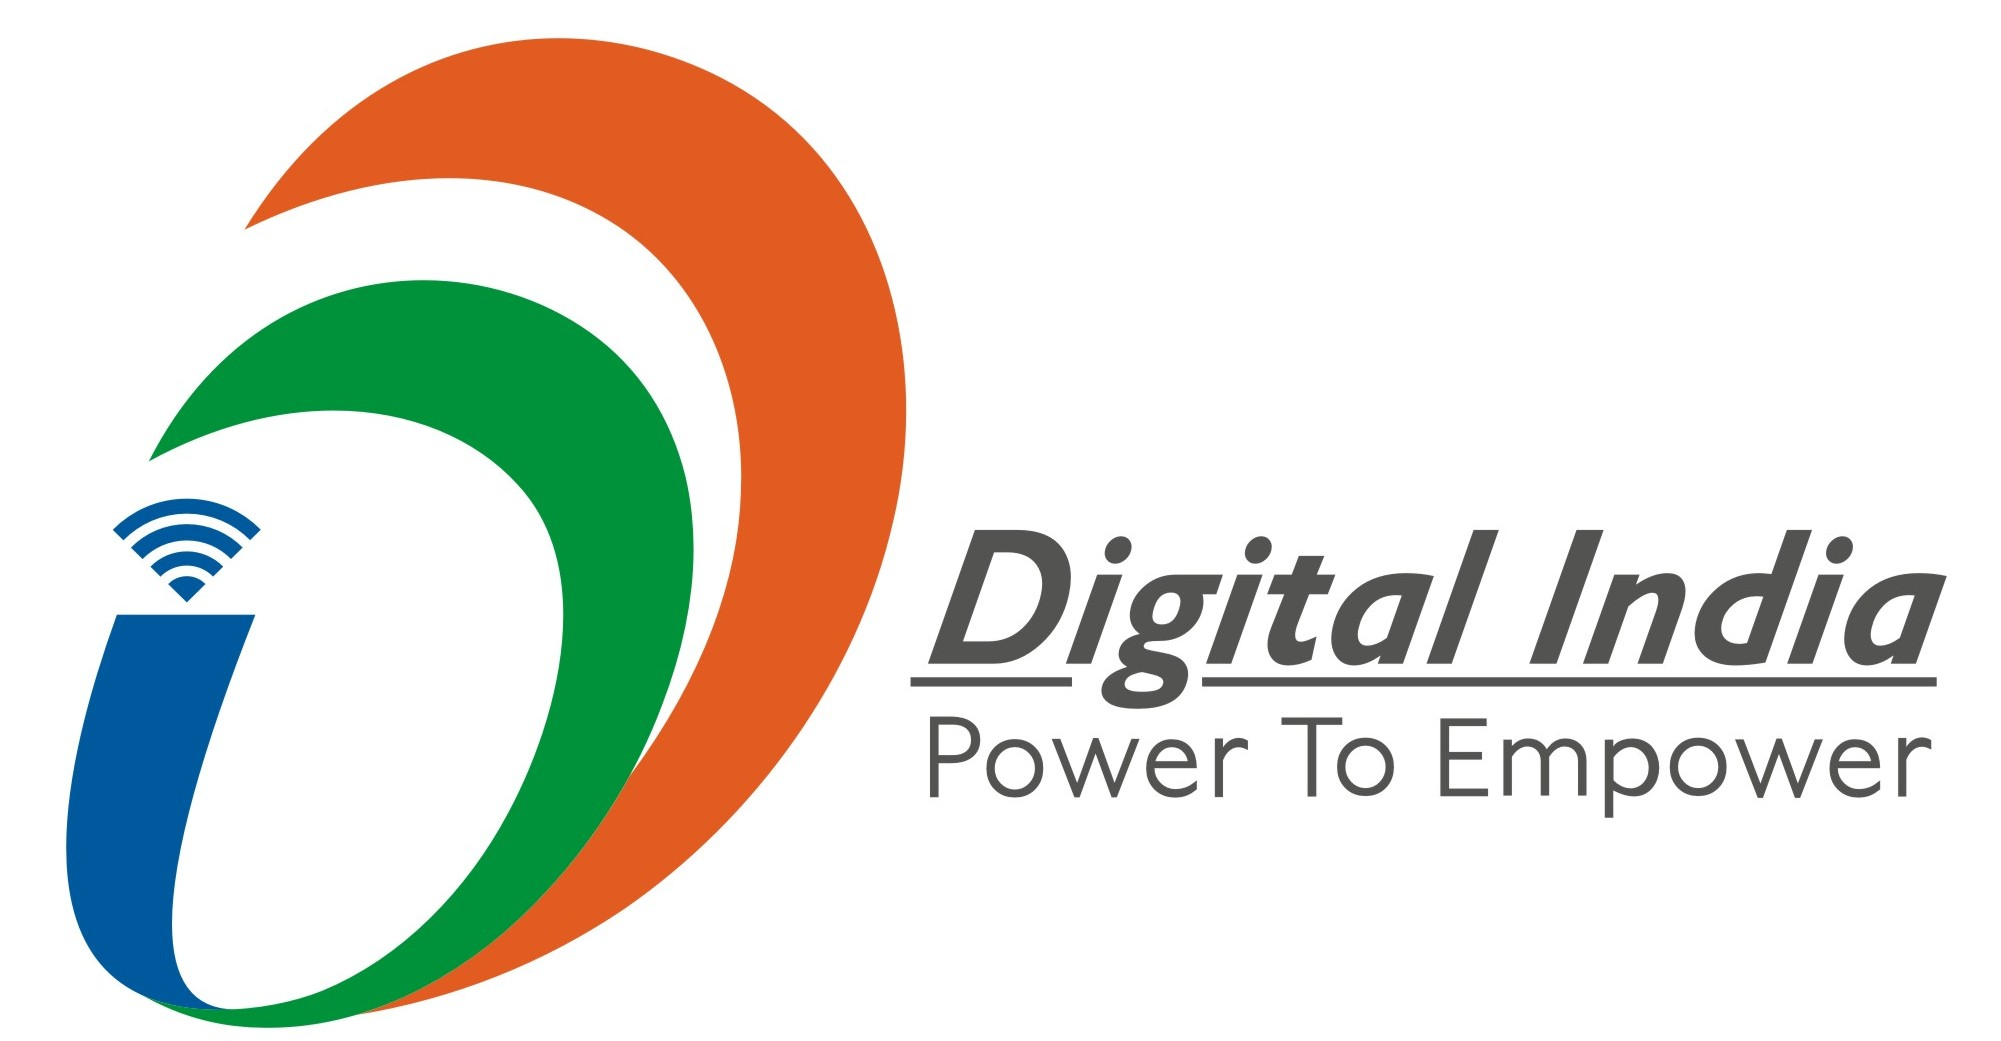 Digital India initiative for making 5 millions digitally literate